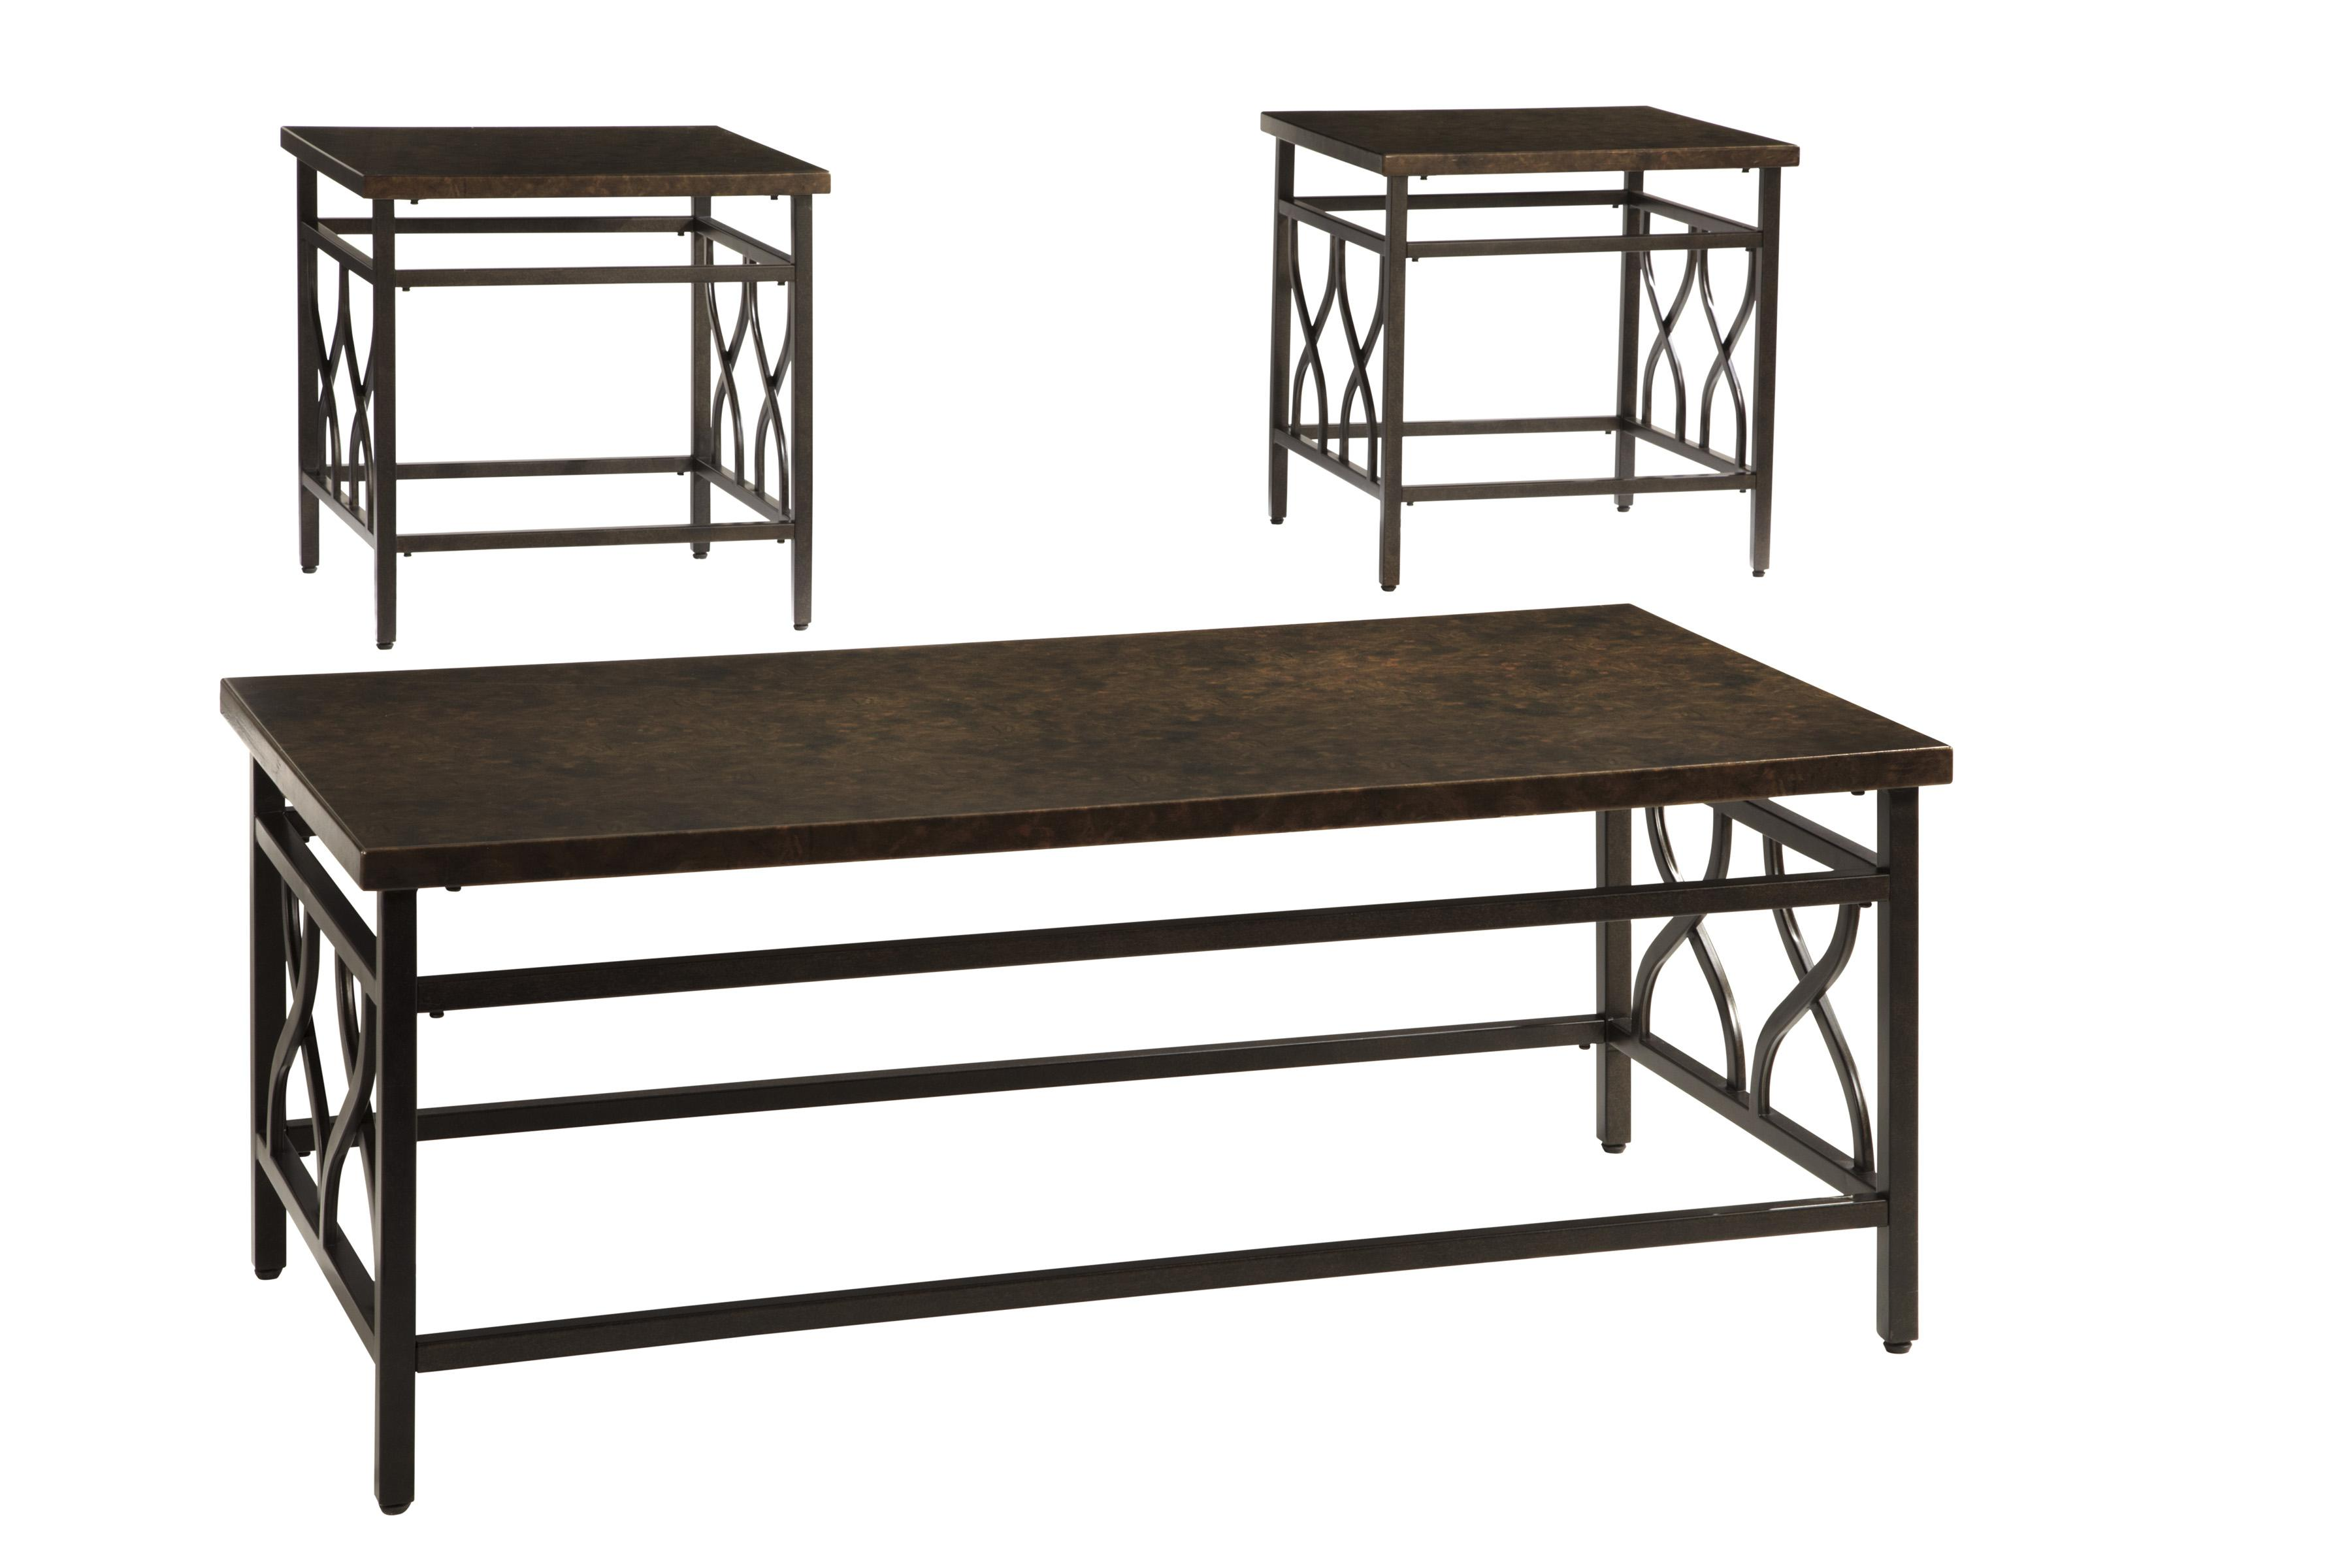 Signature Design by Ashley Tippley Occasional Table Set  - Item Number: T269-13